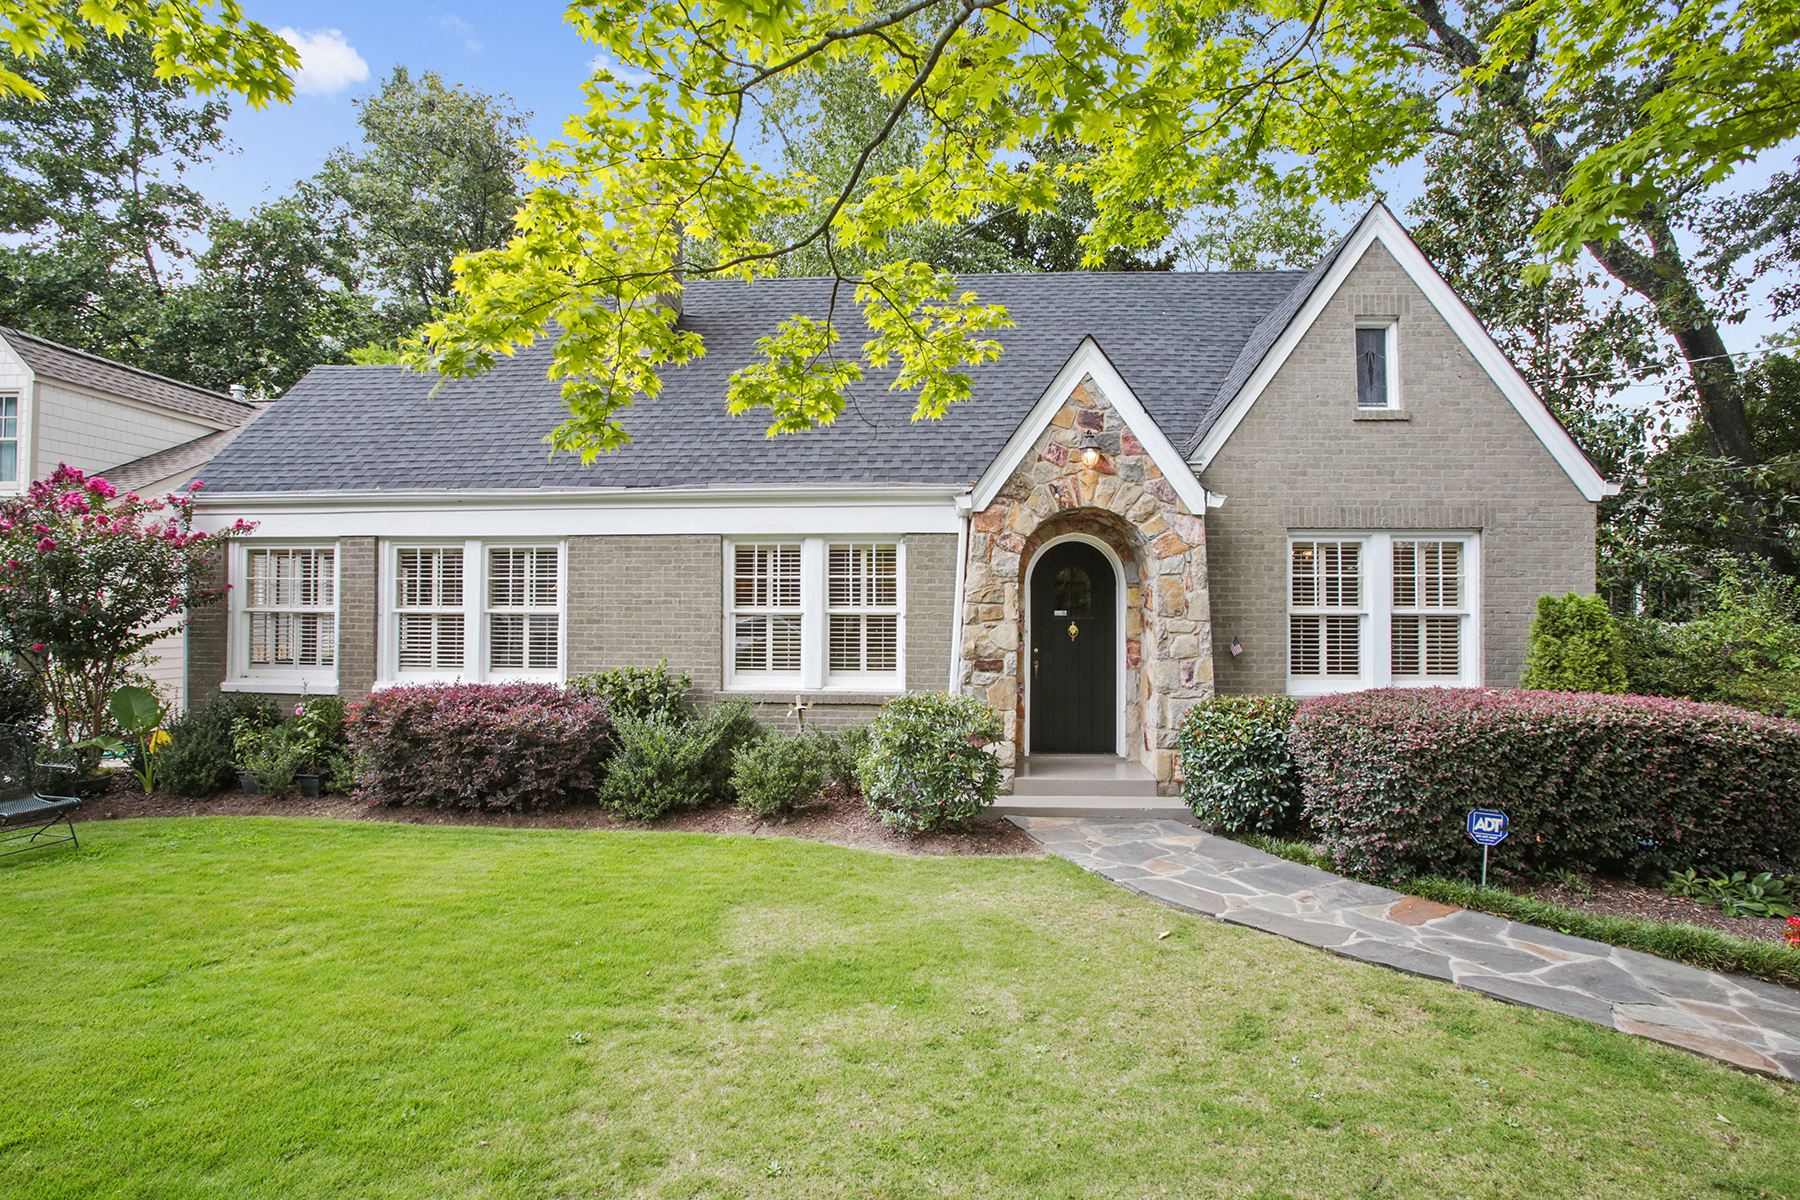 Single Family Home for Sale at Garden Hills Bungalow 2684 Brookwood Drive Atlanta, Georgia 30305 United States